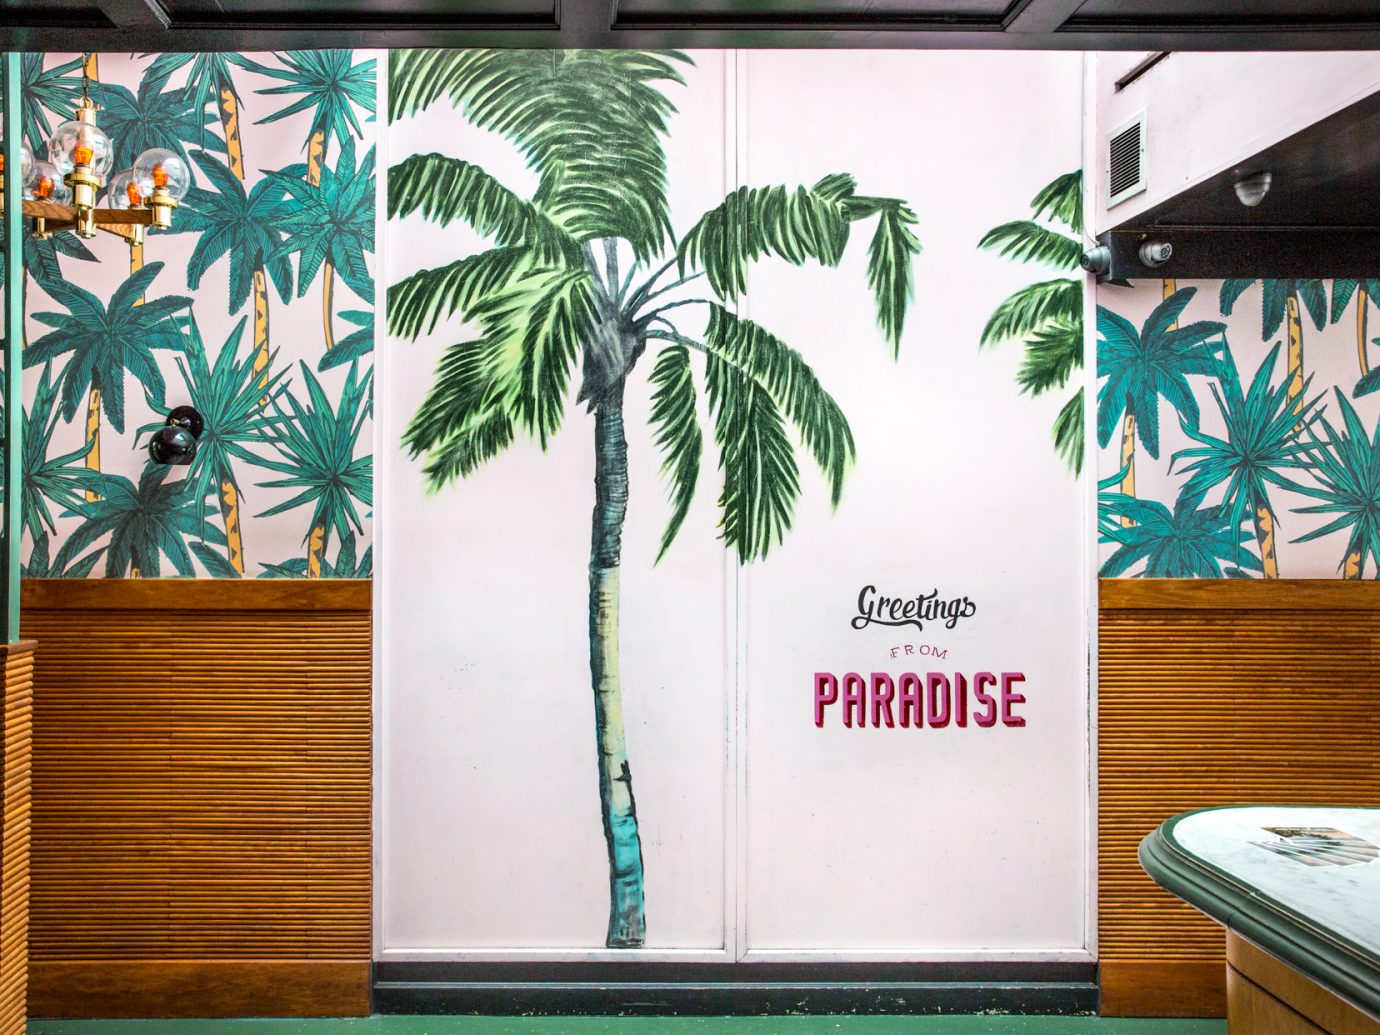 """Door with writing """"Greetings from Paradise"""" with palm tree decal at The Happiest Hour in NYC"""